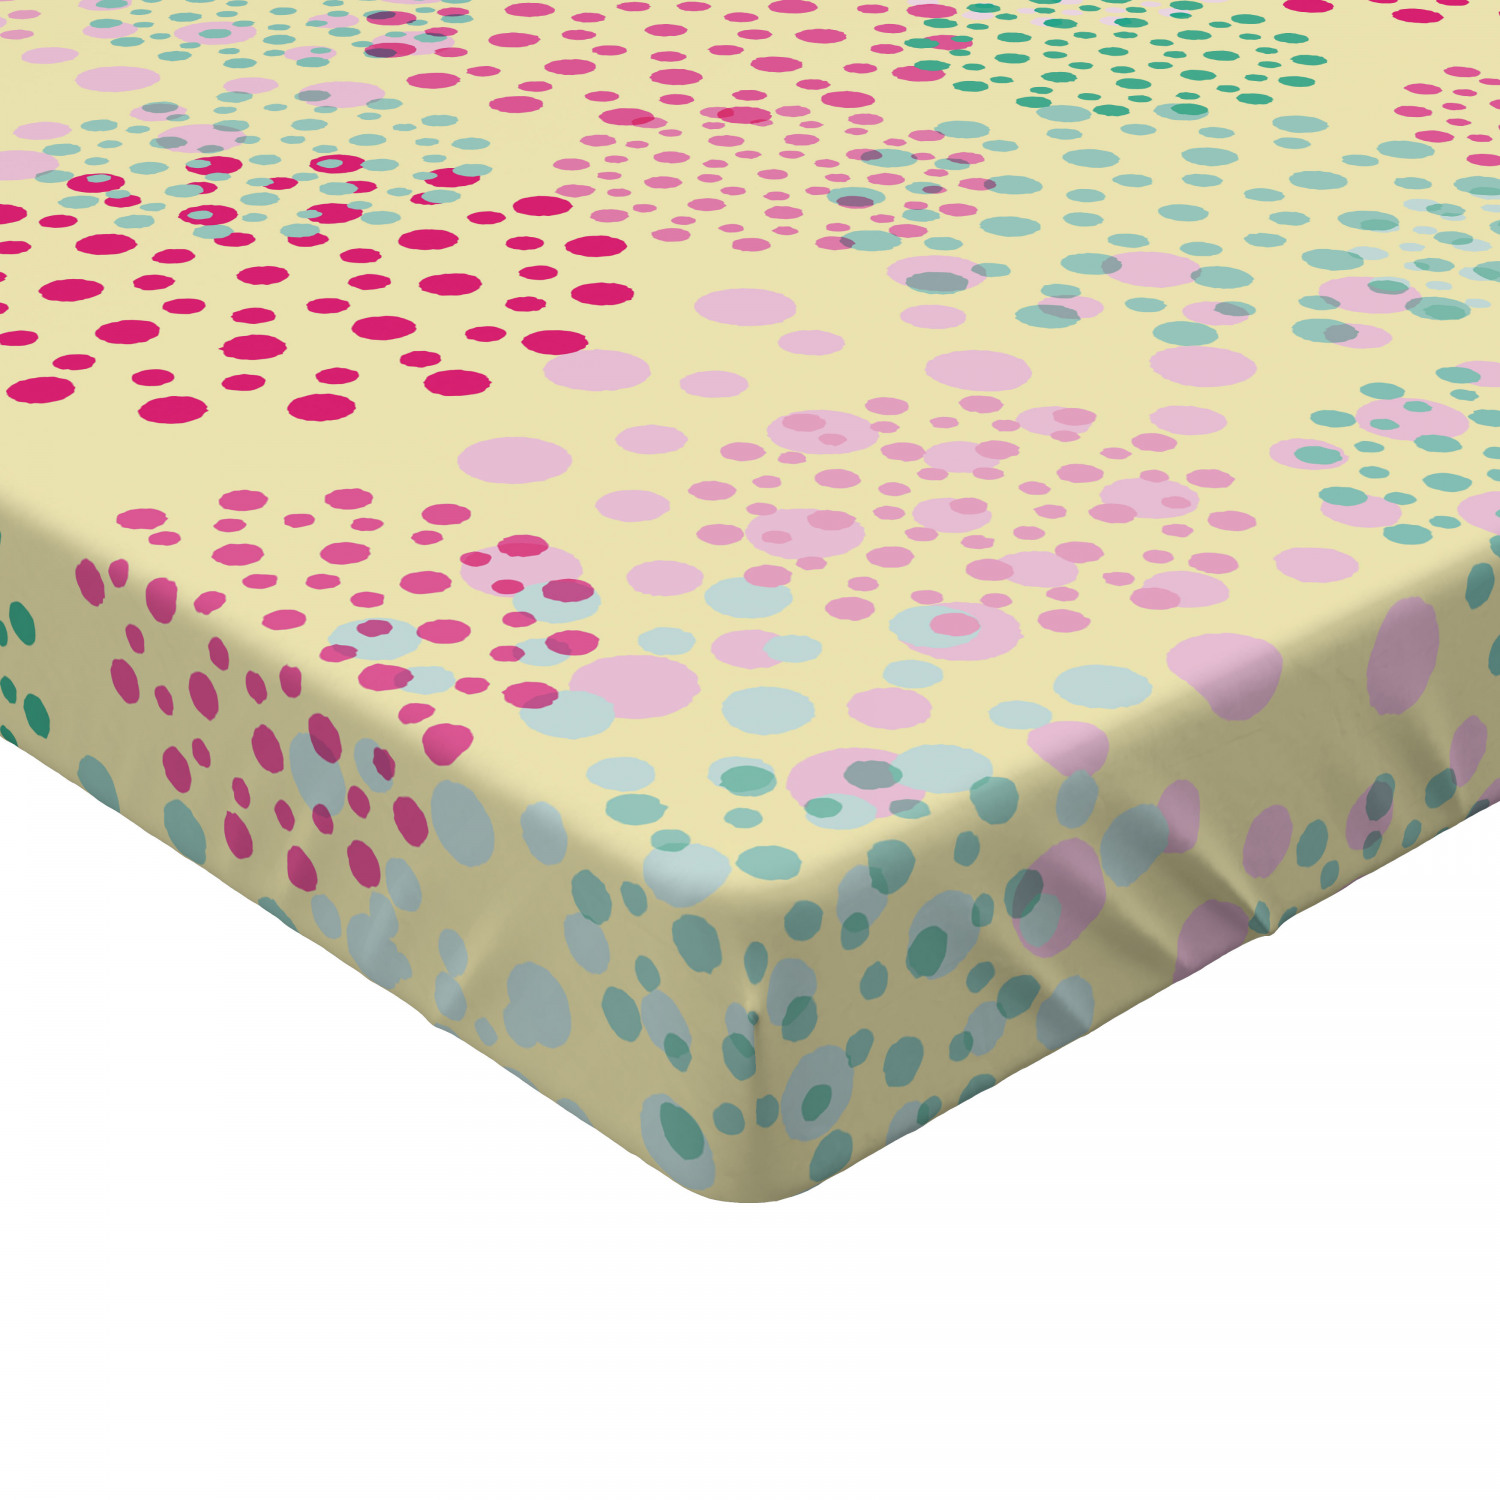 Geek Fitted Sheet Cover with All-Round Elastic Pocket in 4 Sizes